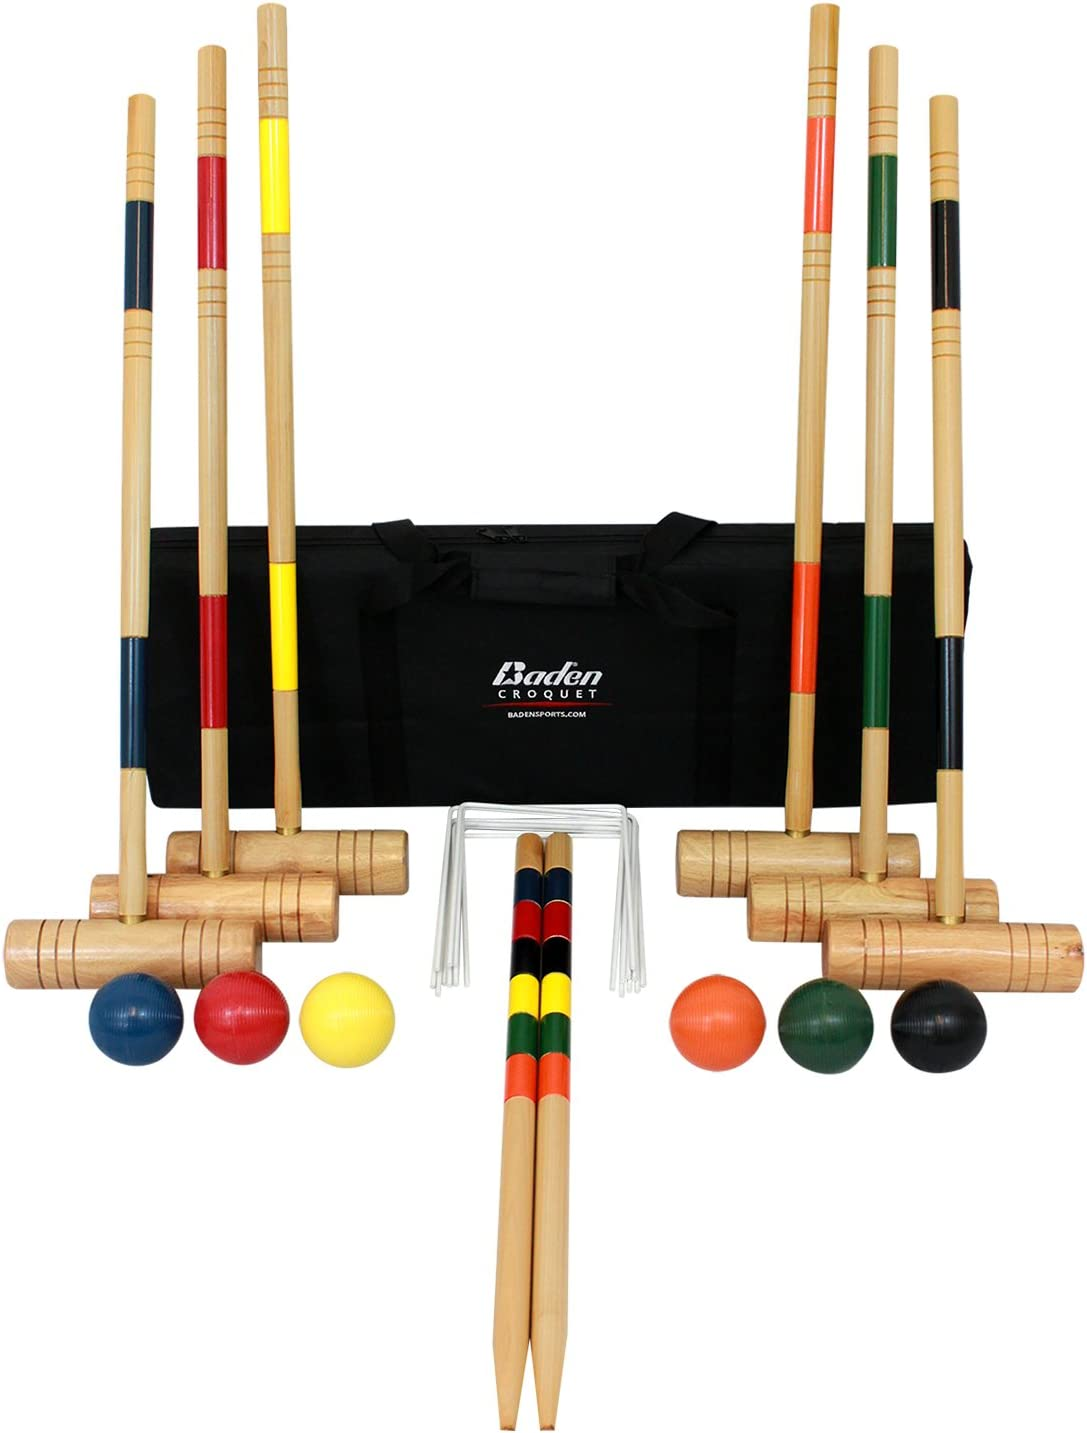 Amazon.com : Baden Deluxe Series Croquet Set : Croquet Set For ...